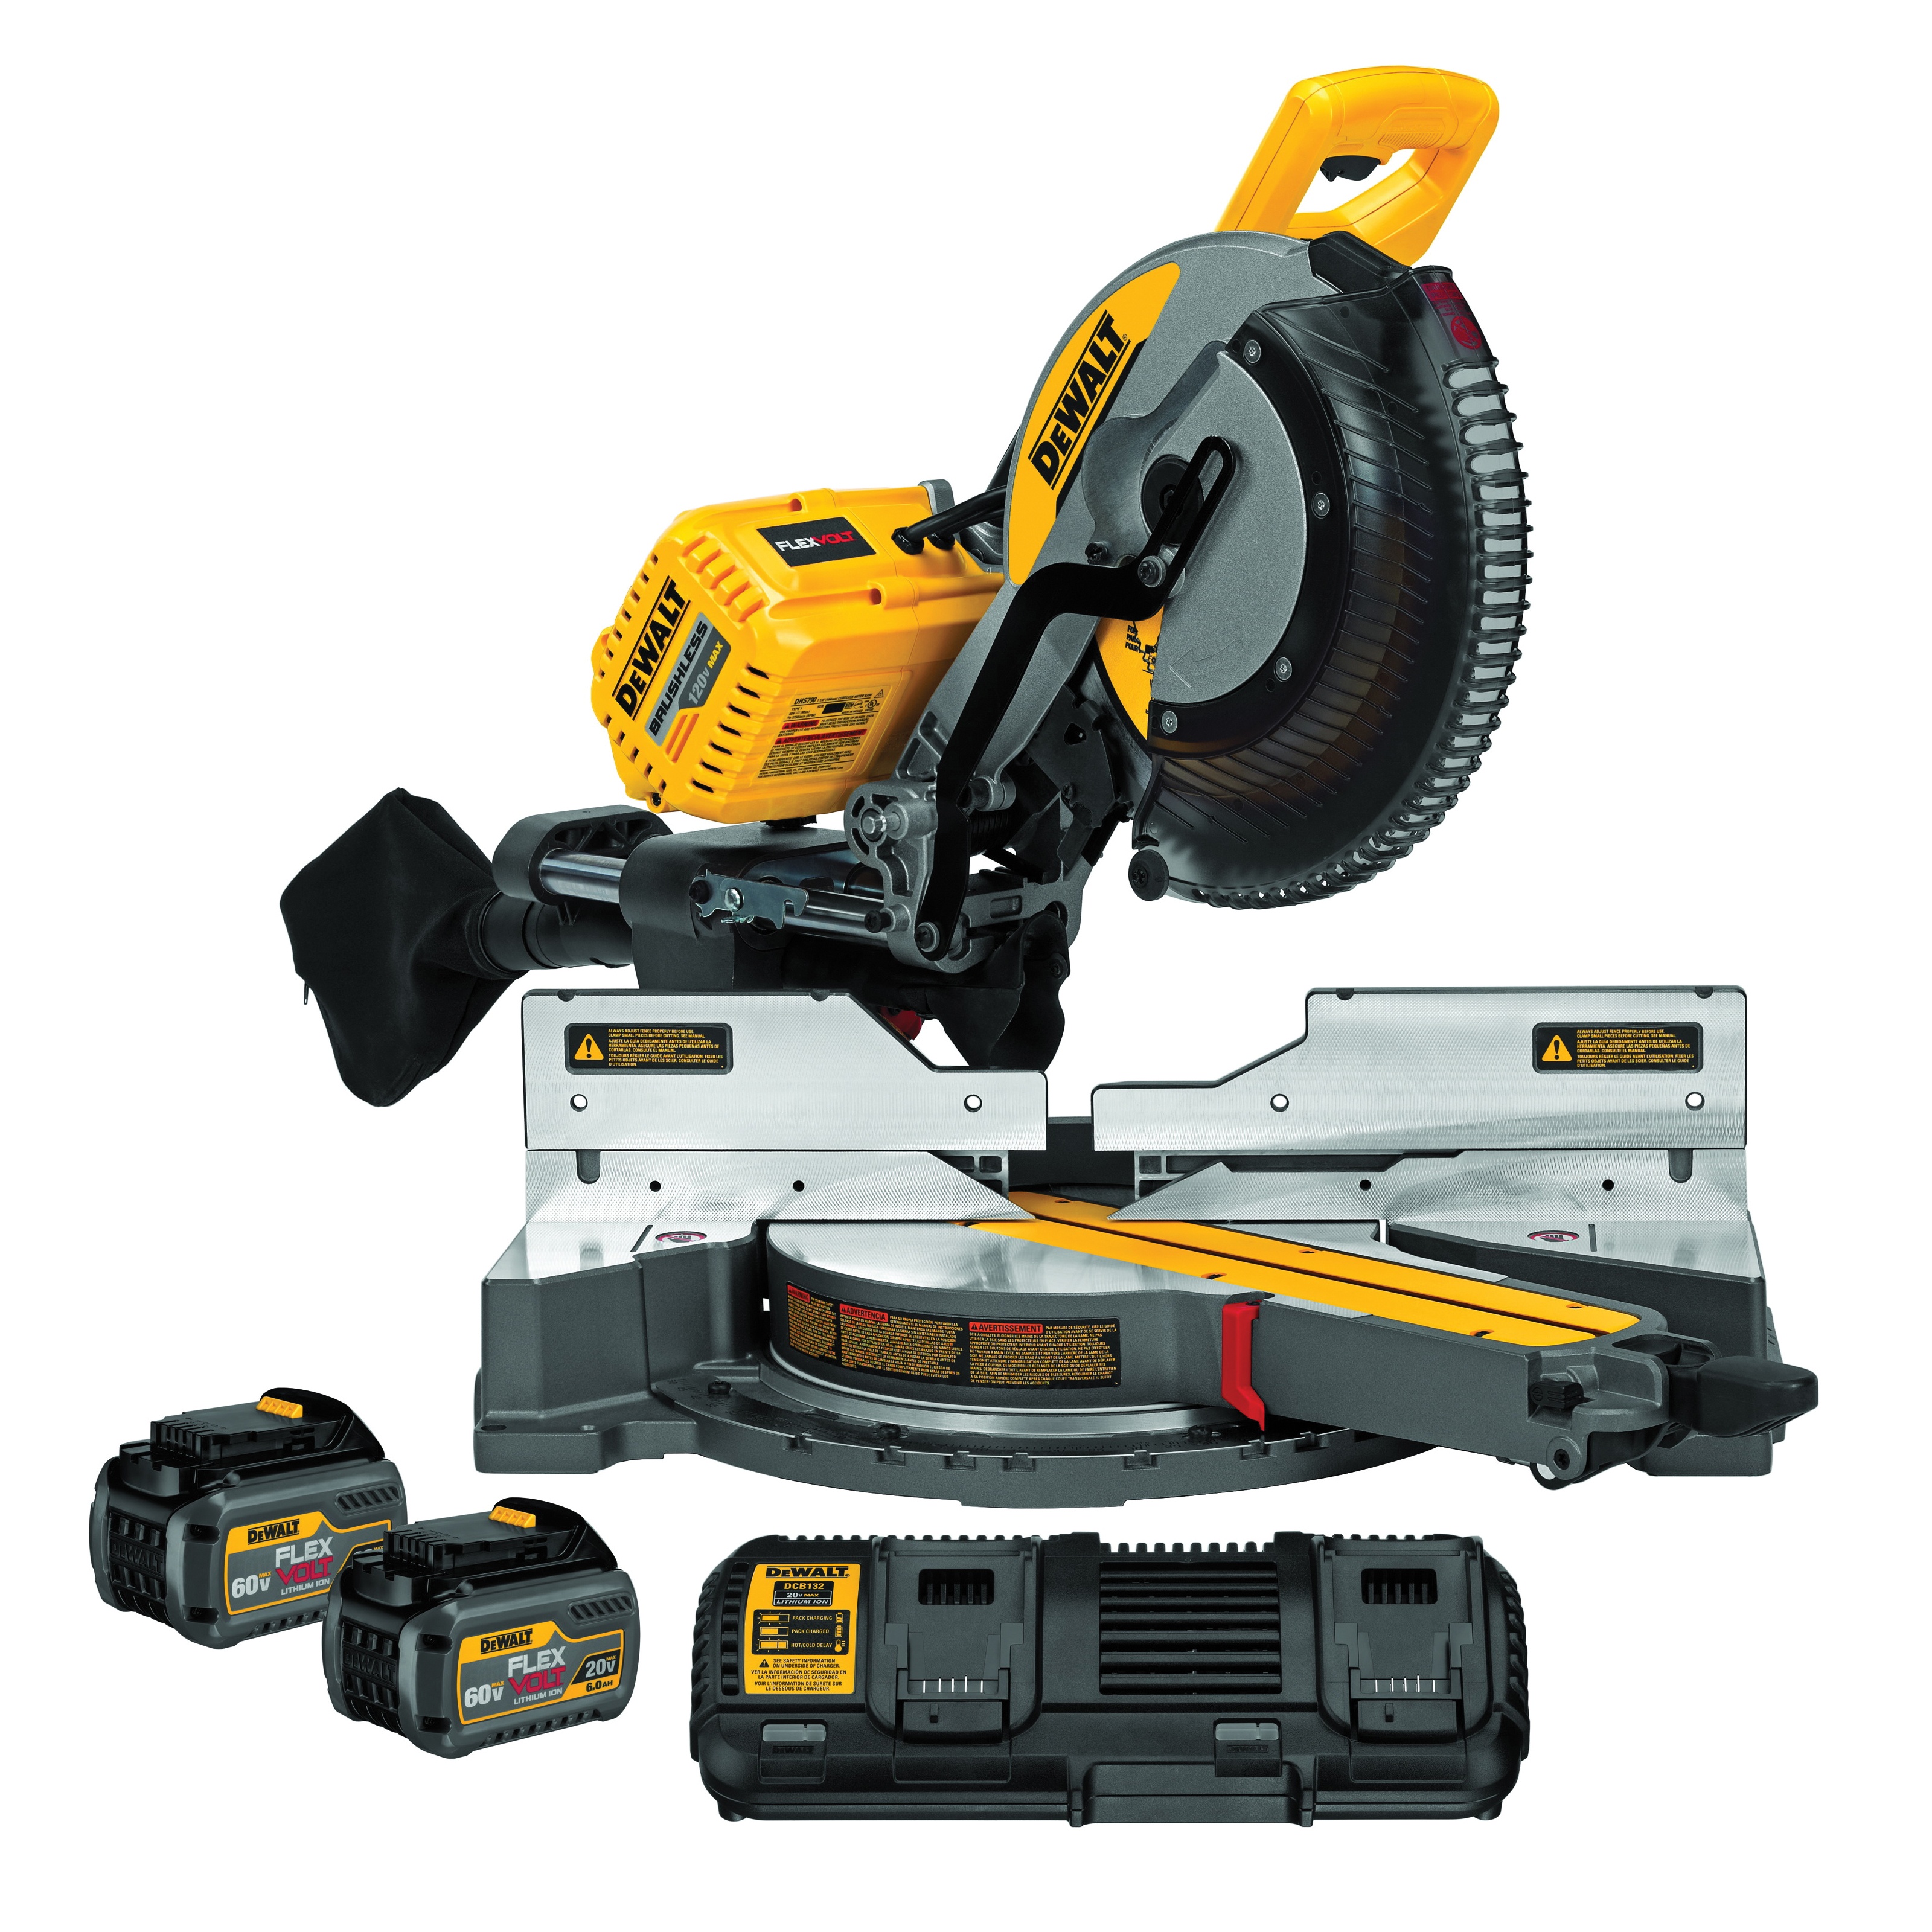 DeWALT® 120V MAX* DHS790T2 Compound Cordless Miter Saw Kit With CUTLINE™ Blade Positioning System, 12 in Blade, 5/8 in Arbor/Shank, 16 in W at 90 deg Cutting, 4 in H x 8 in W at 45 deg Miter, 45 deg Bevel